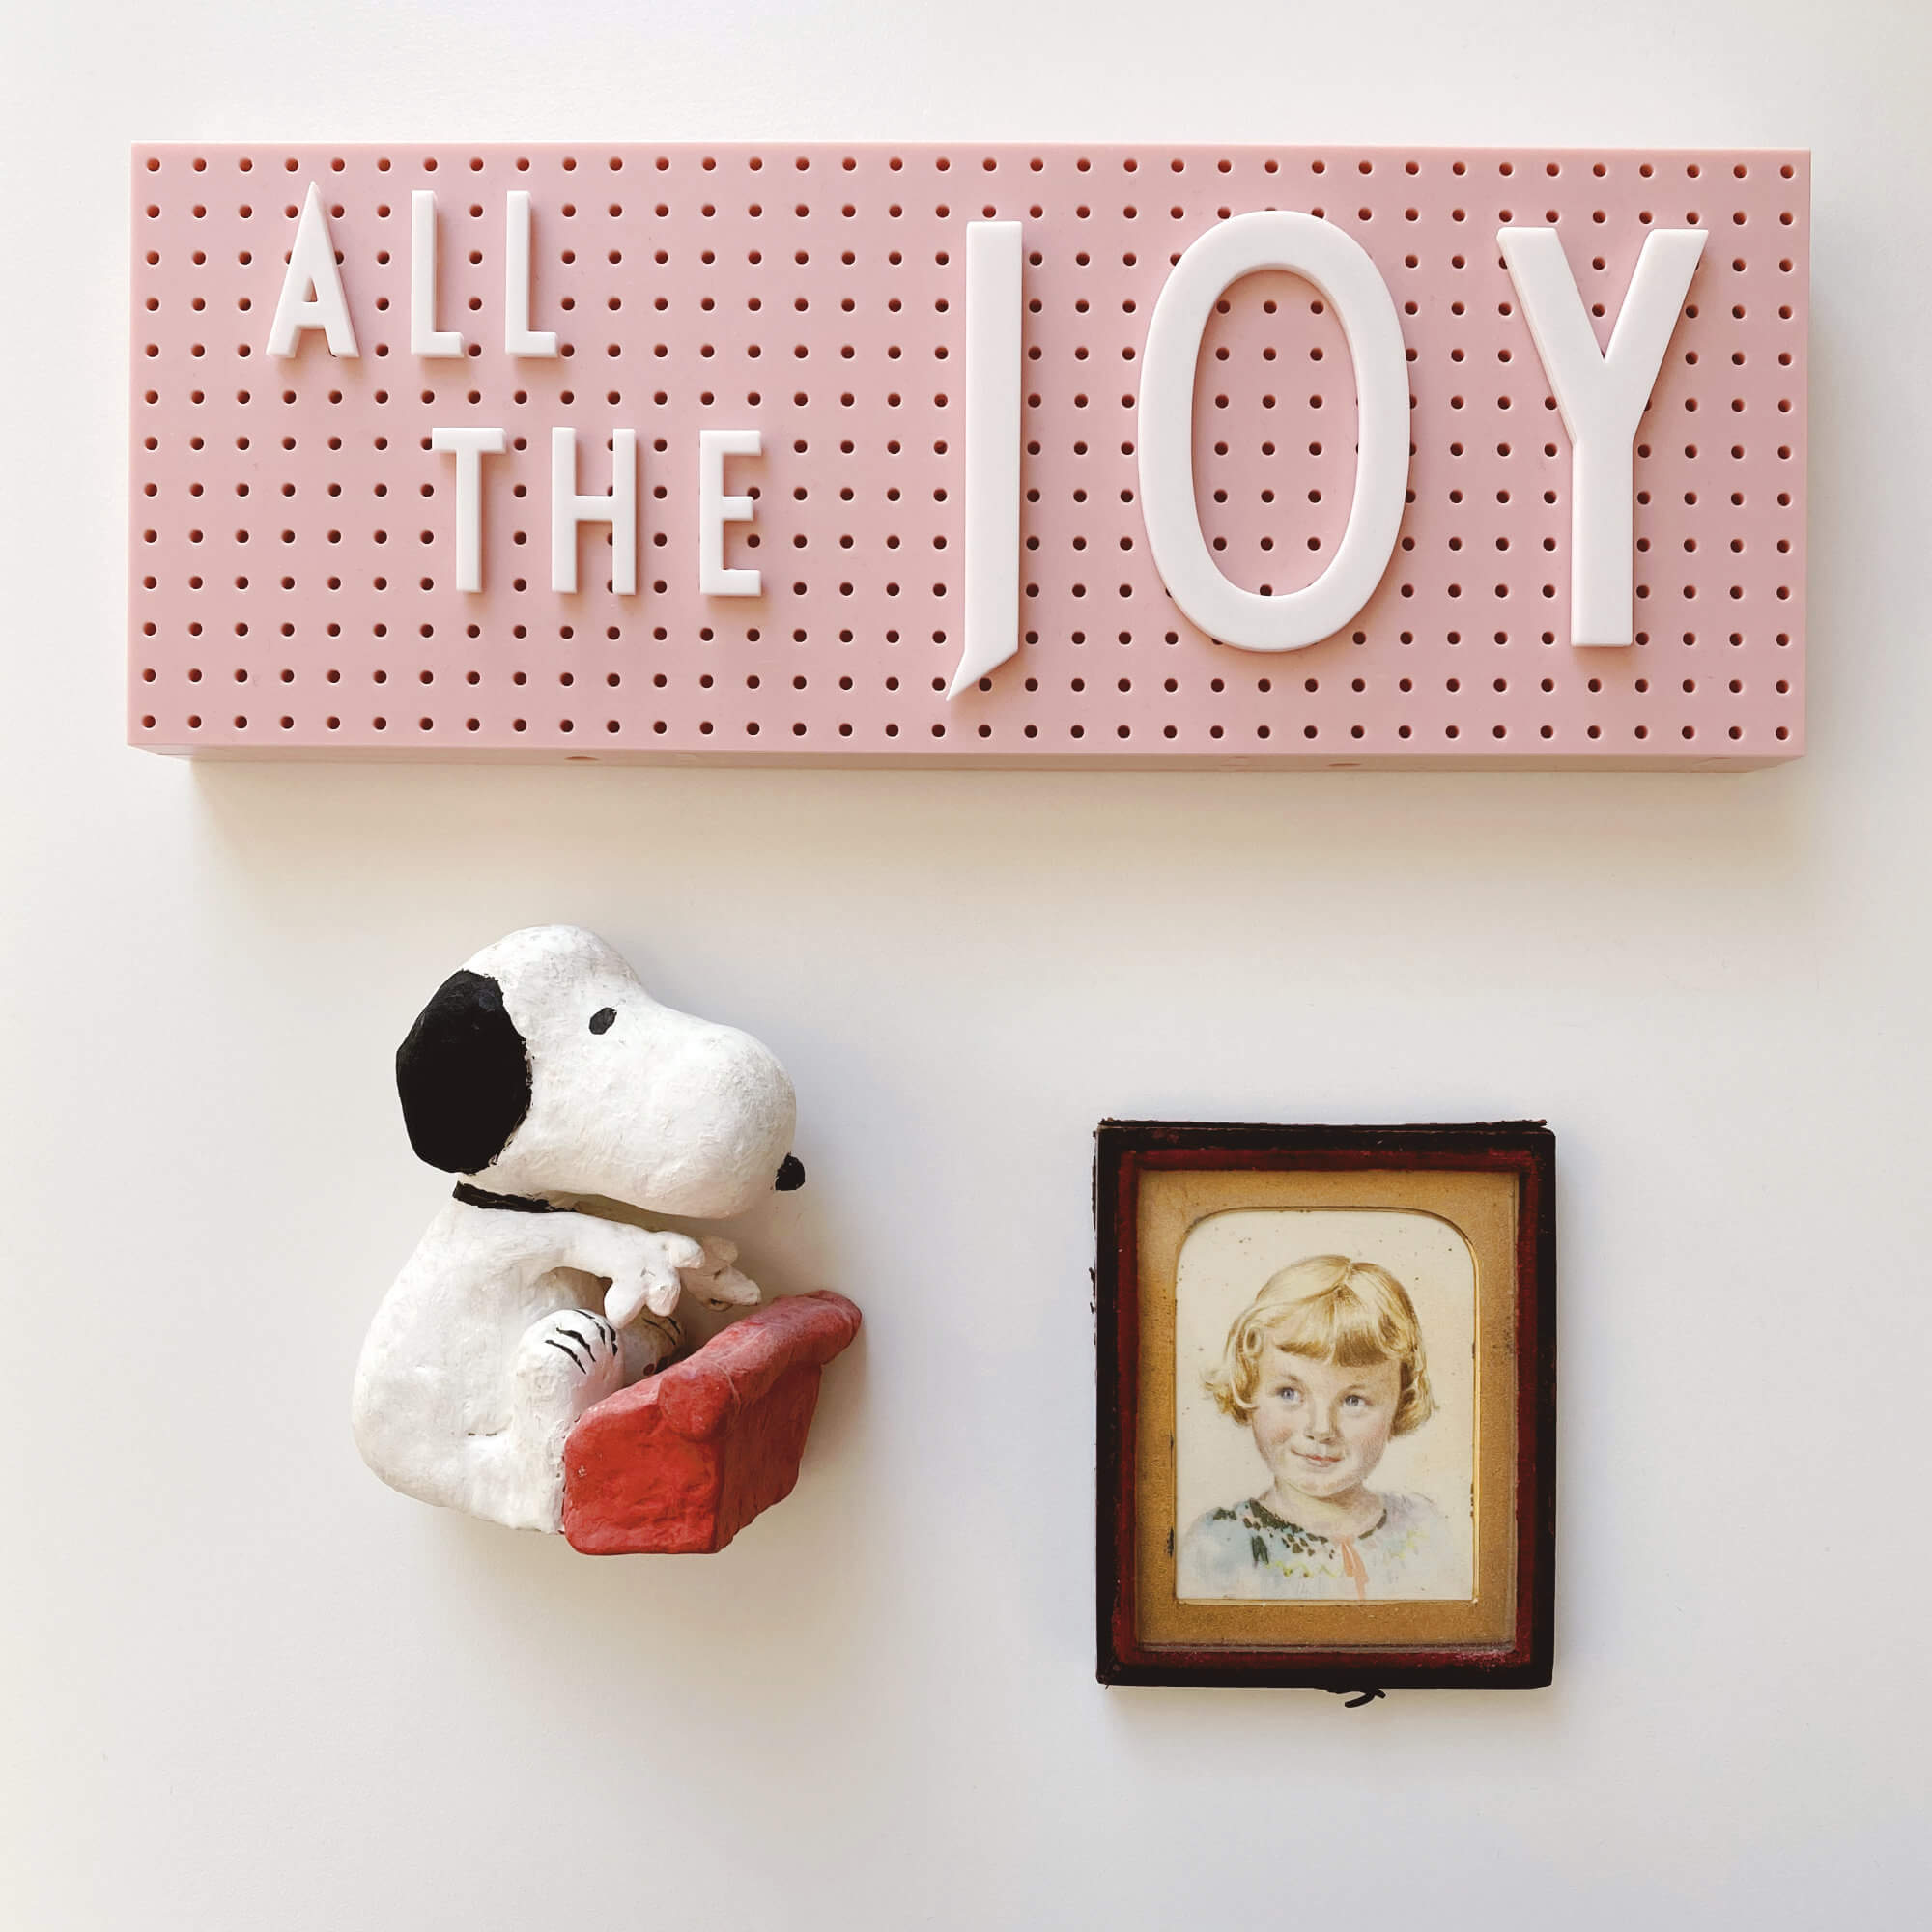 Sentimental Items Are Often Objects Made Long Ago, Like This Sweet Clay Snoopy And Illustrated Portrait Of A Little Girl